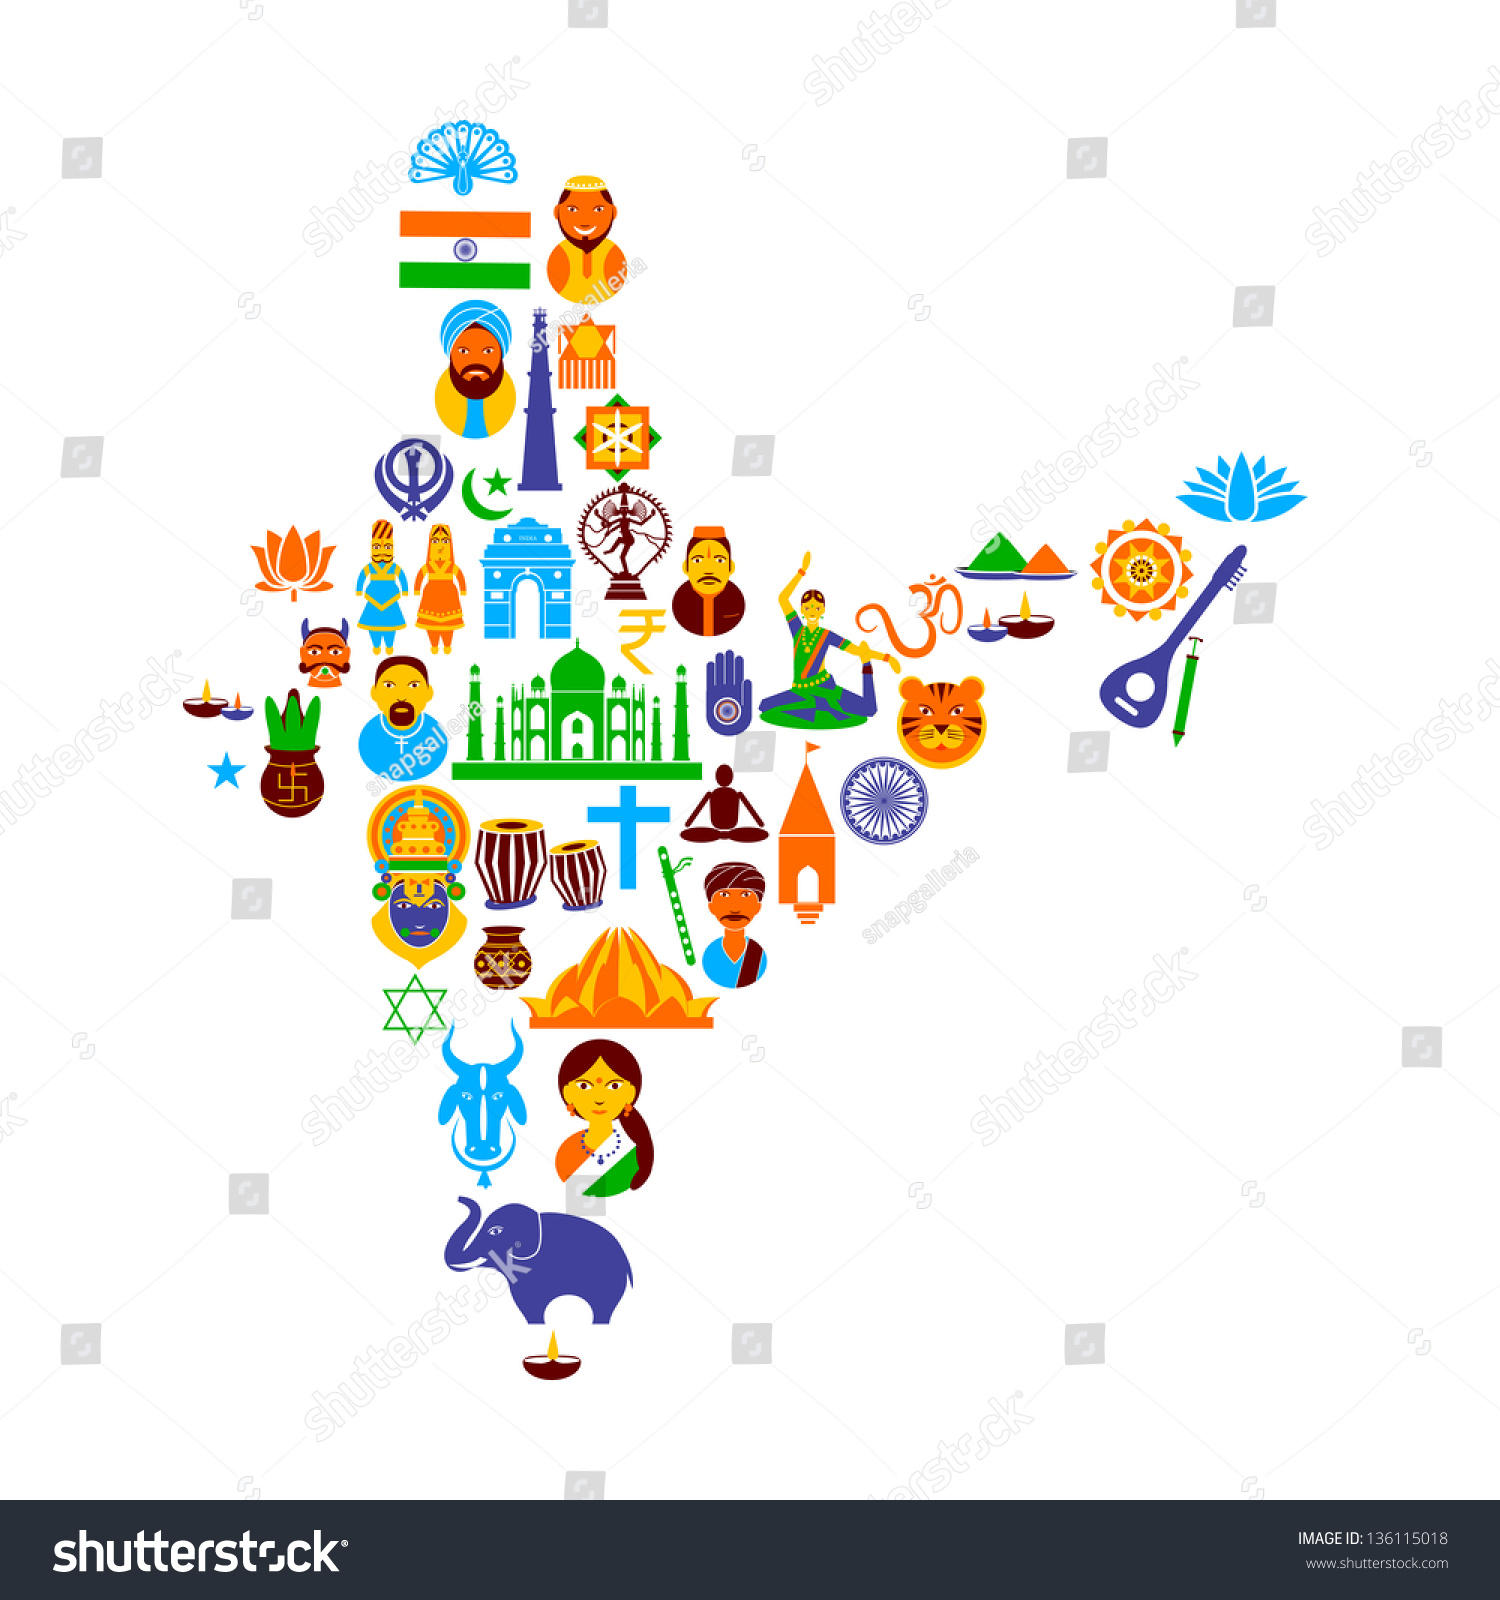 18 with India Map With Symbols on India Map With Symbols also The Most Beautiful And Famous Trees On Earth moreover Kenya further Anthony Kiedis Haidi Thunderbird Native American Back Tattoo moreover Himalayan Maidenhair Fern.